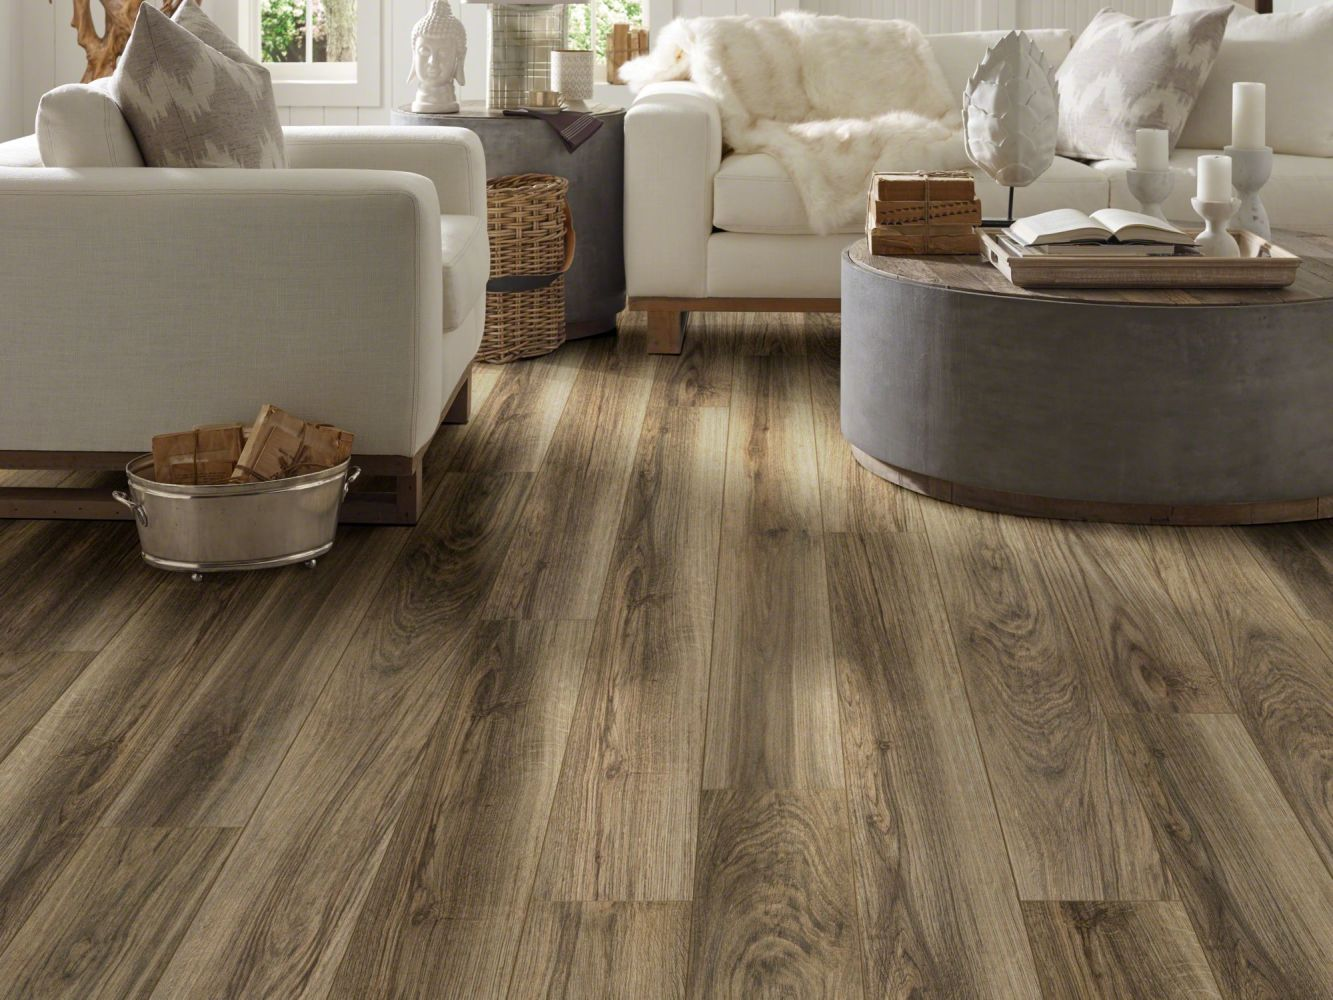 Shaw Floors Dr Horton Hampton Plus Riva 00165_DR012